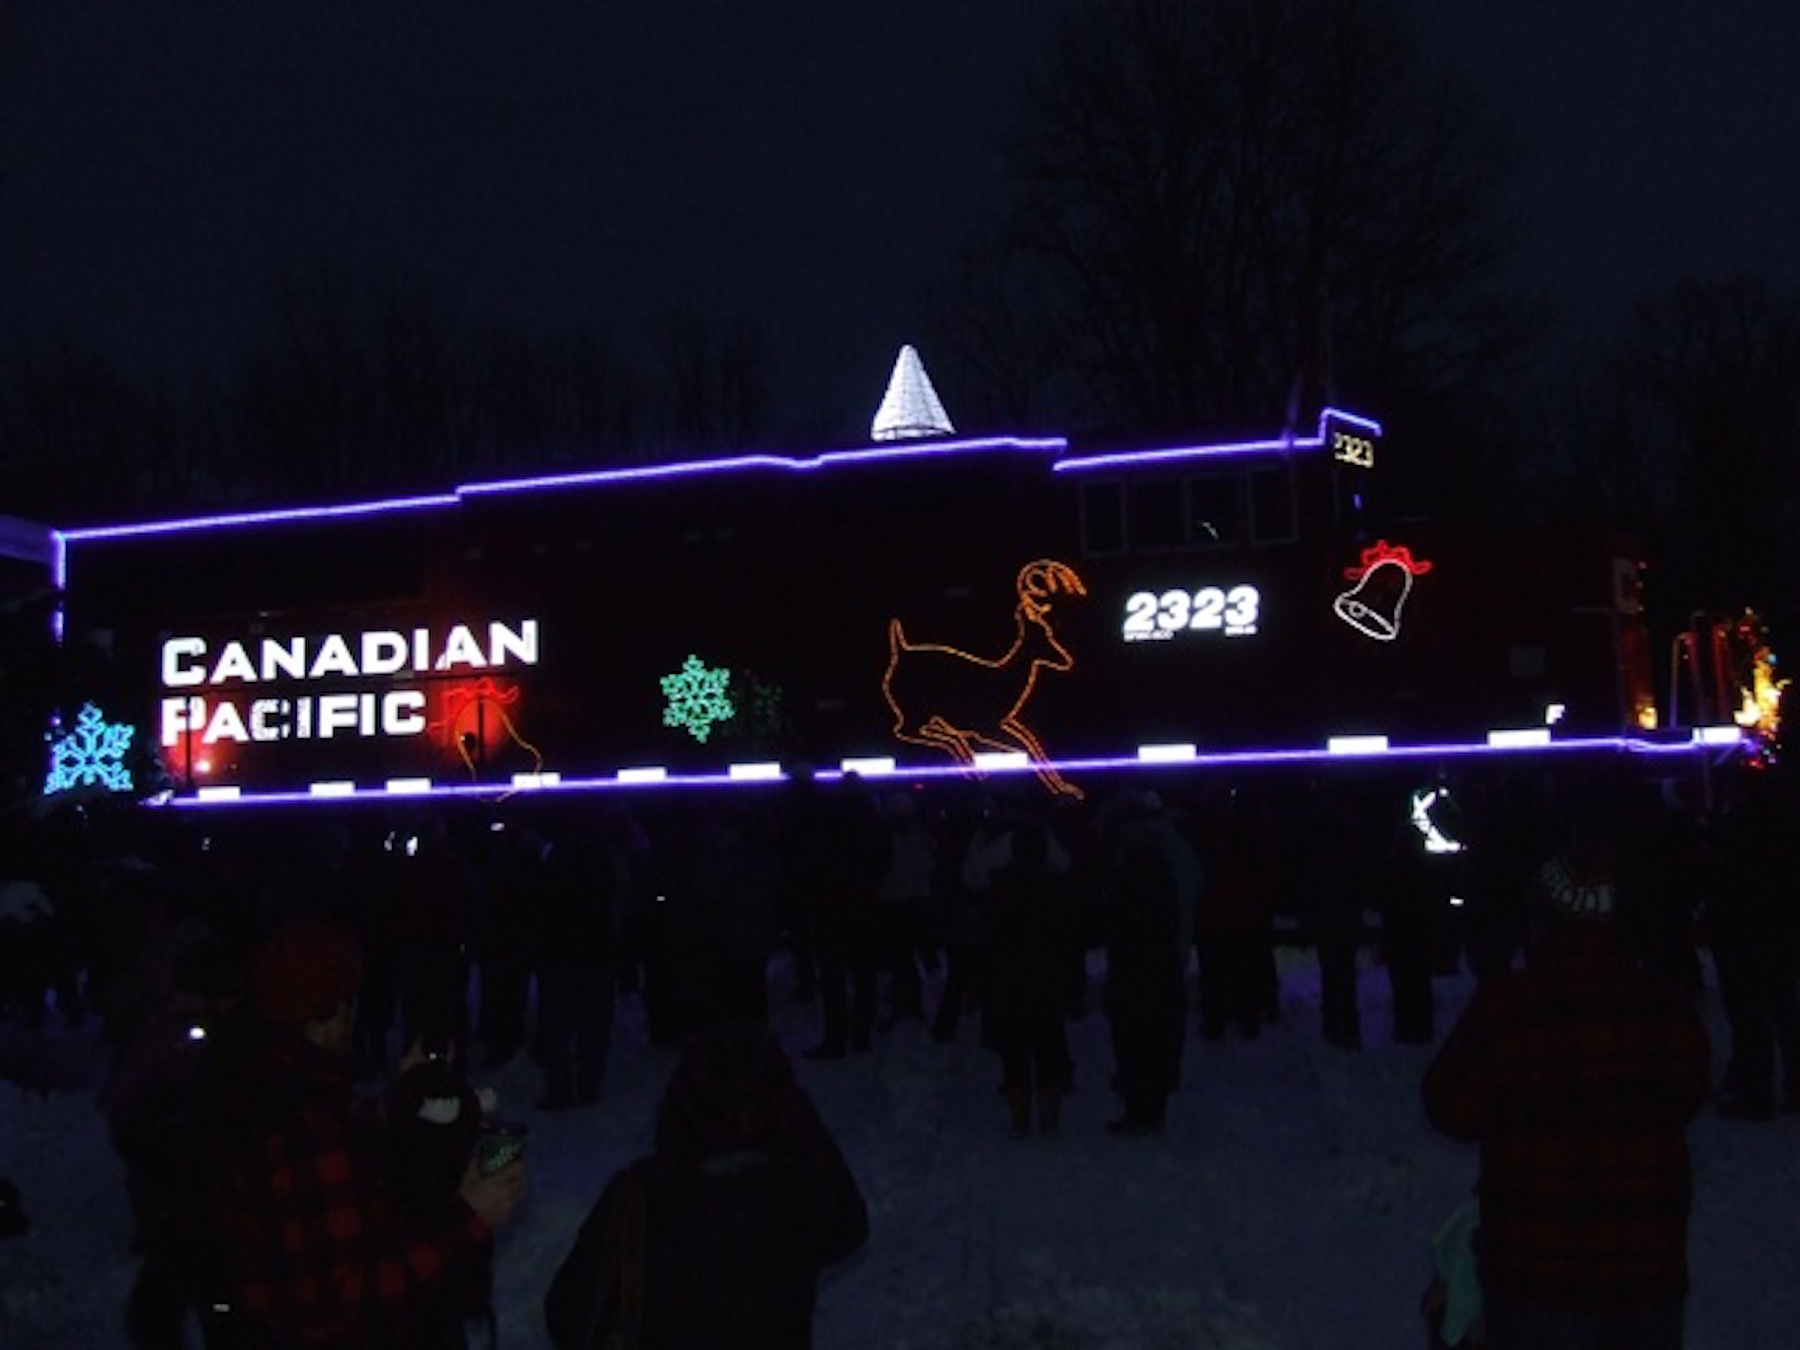 Canadian Pacific lights